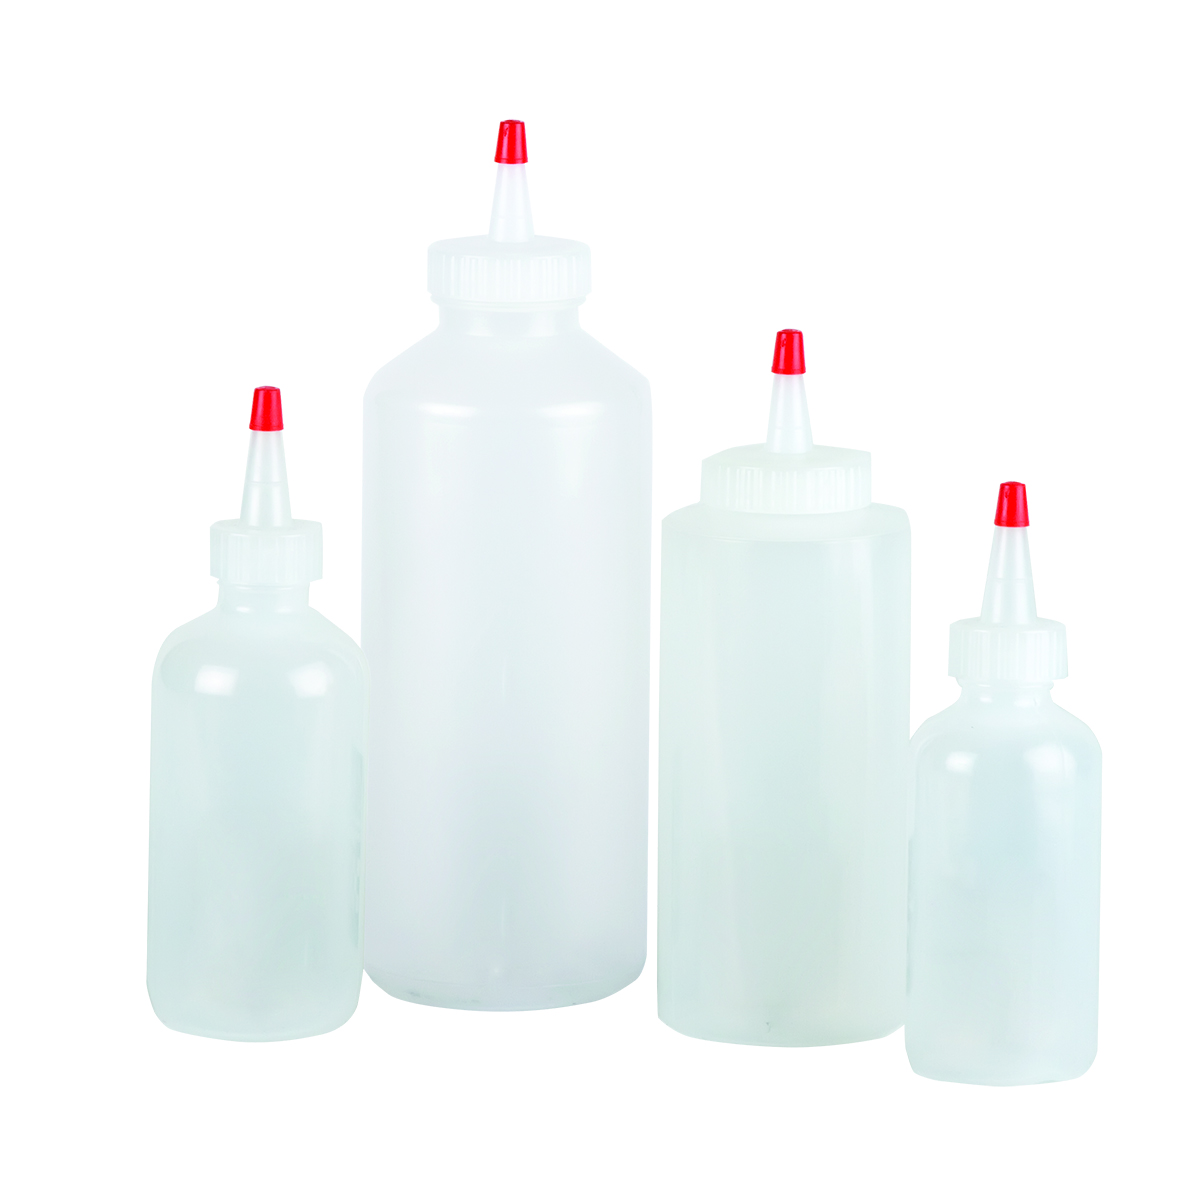 squeezebottles_group_NoChefLogo